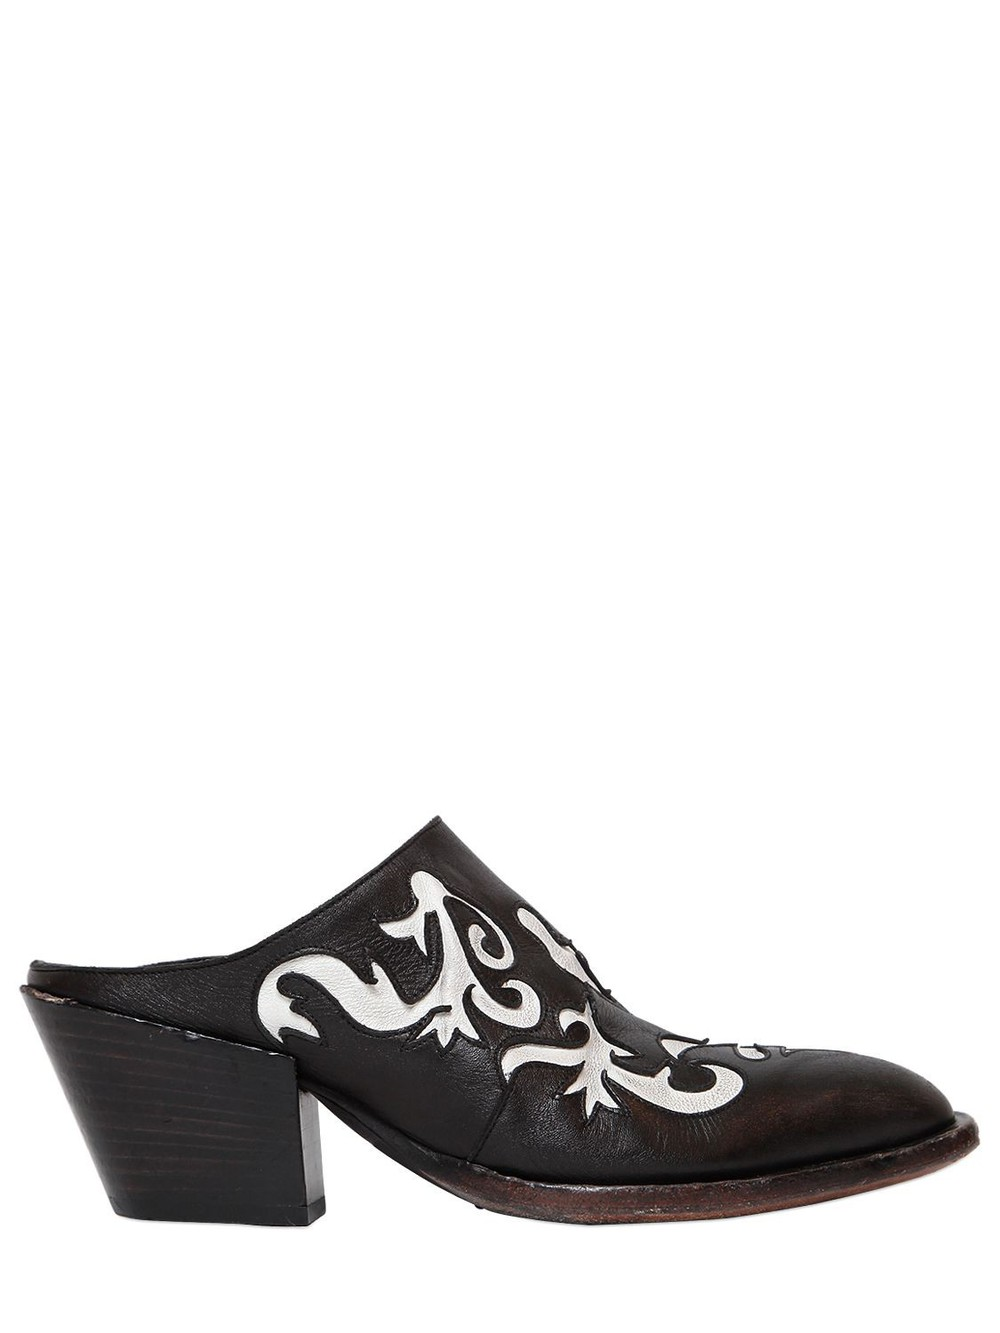 50mm Cowboy Leather Mules. $423.00$327.00. others shoes